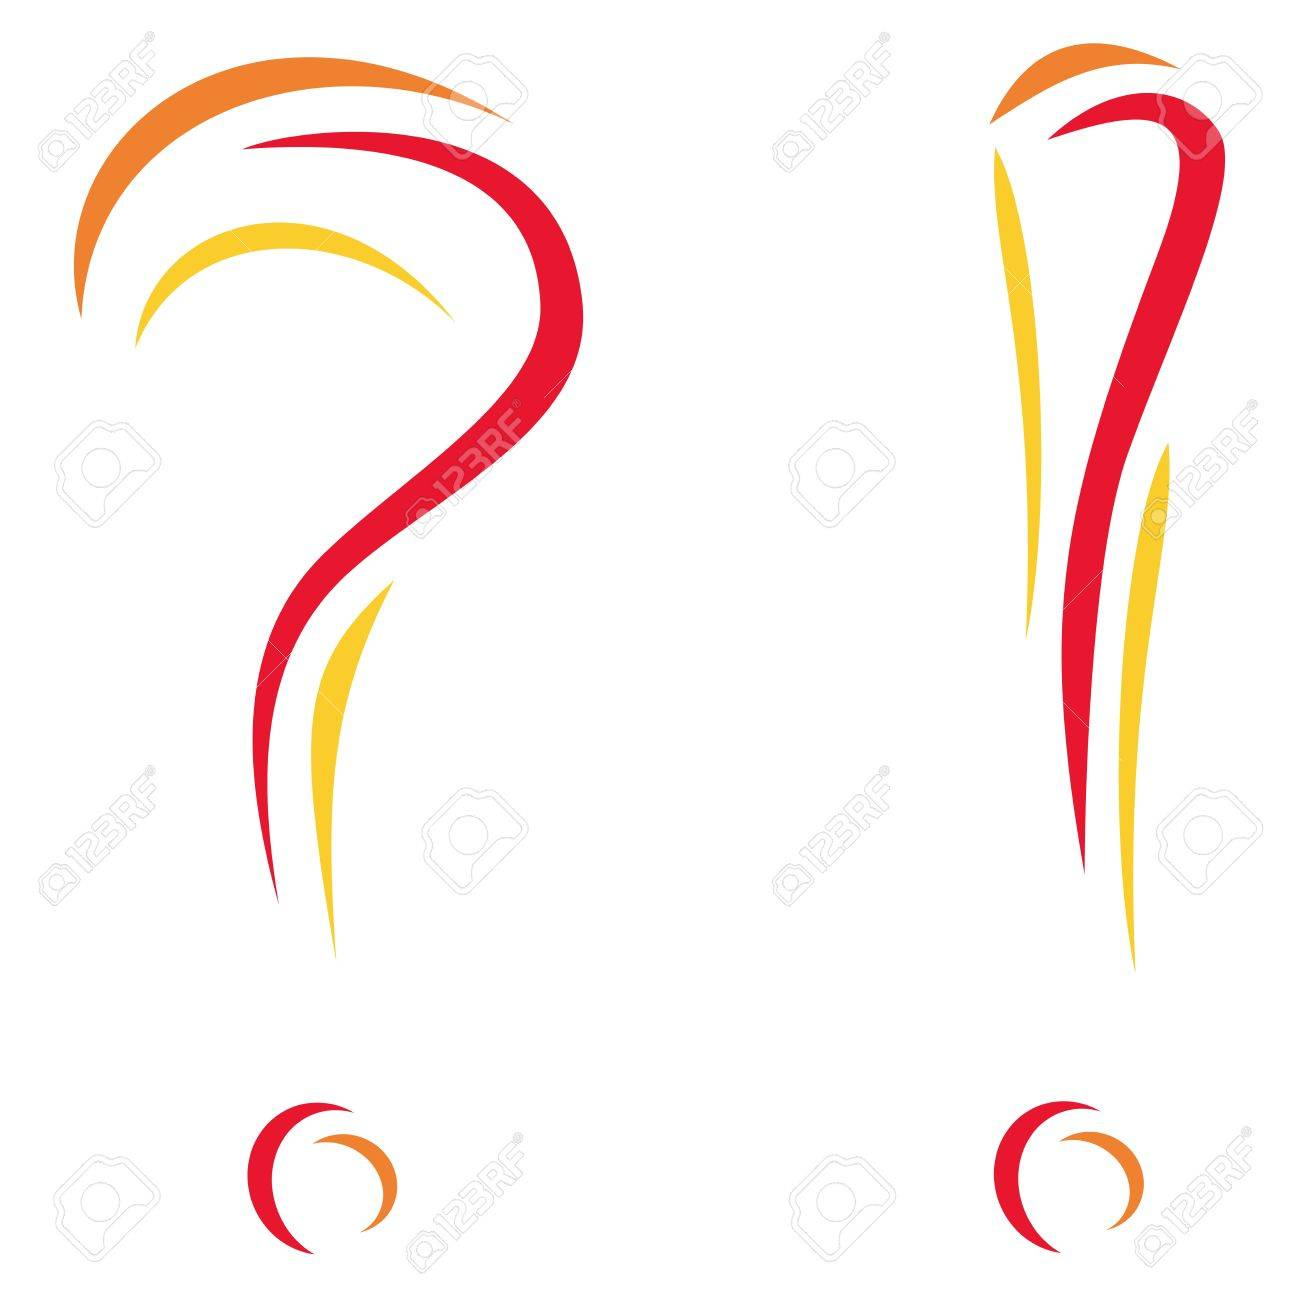 Question and interjection Stock Vector - 9913311